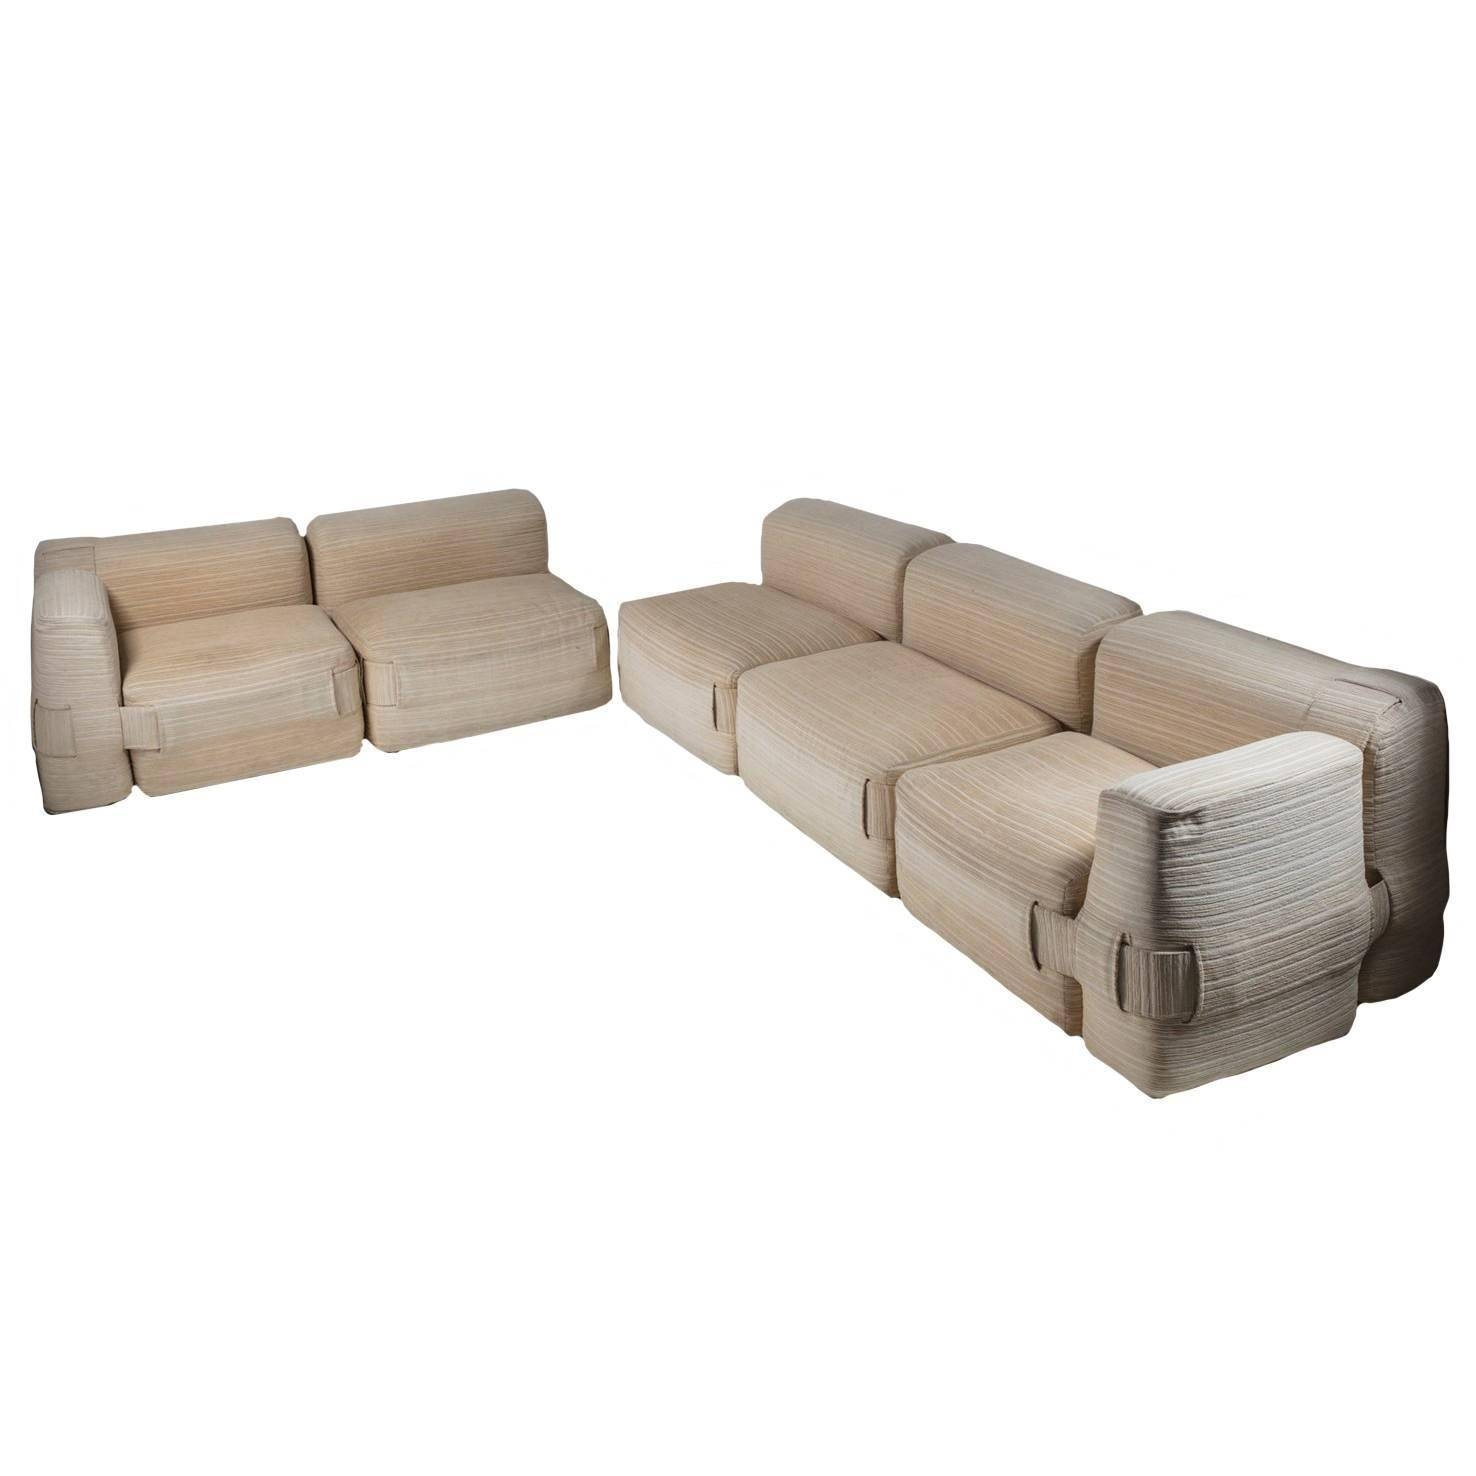 20+ Choices Of Bellini Sofas | Sofa Ideas Throughout Bellini Sofas (View 15 of 15)